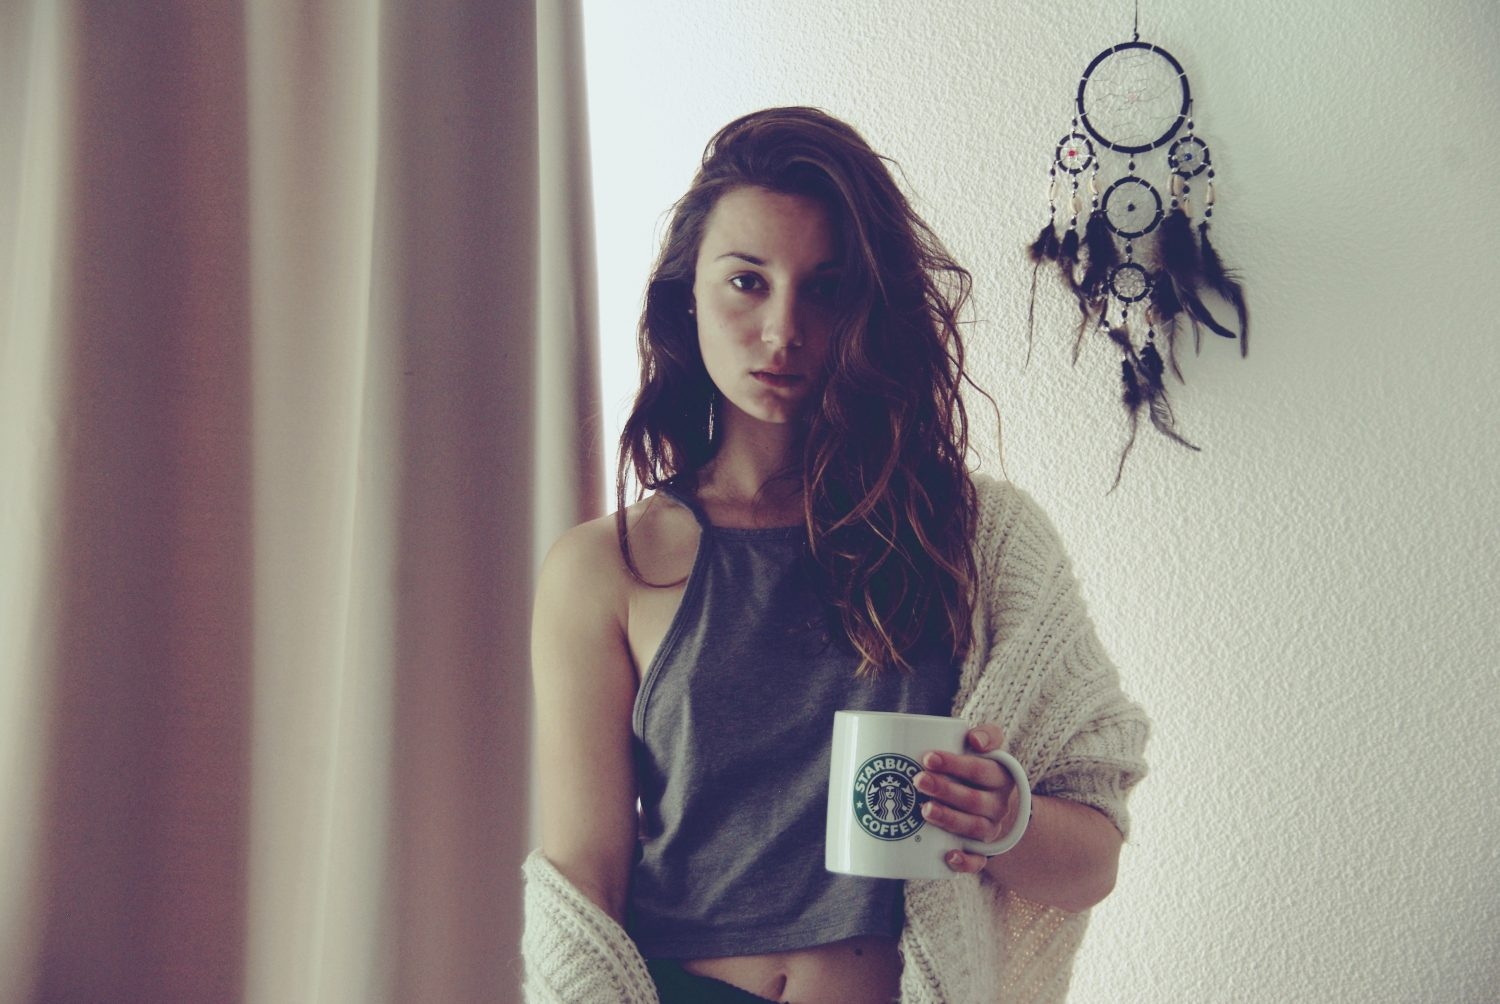 woman in gray halter top holding mug